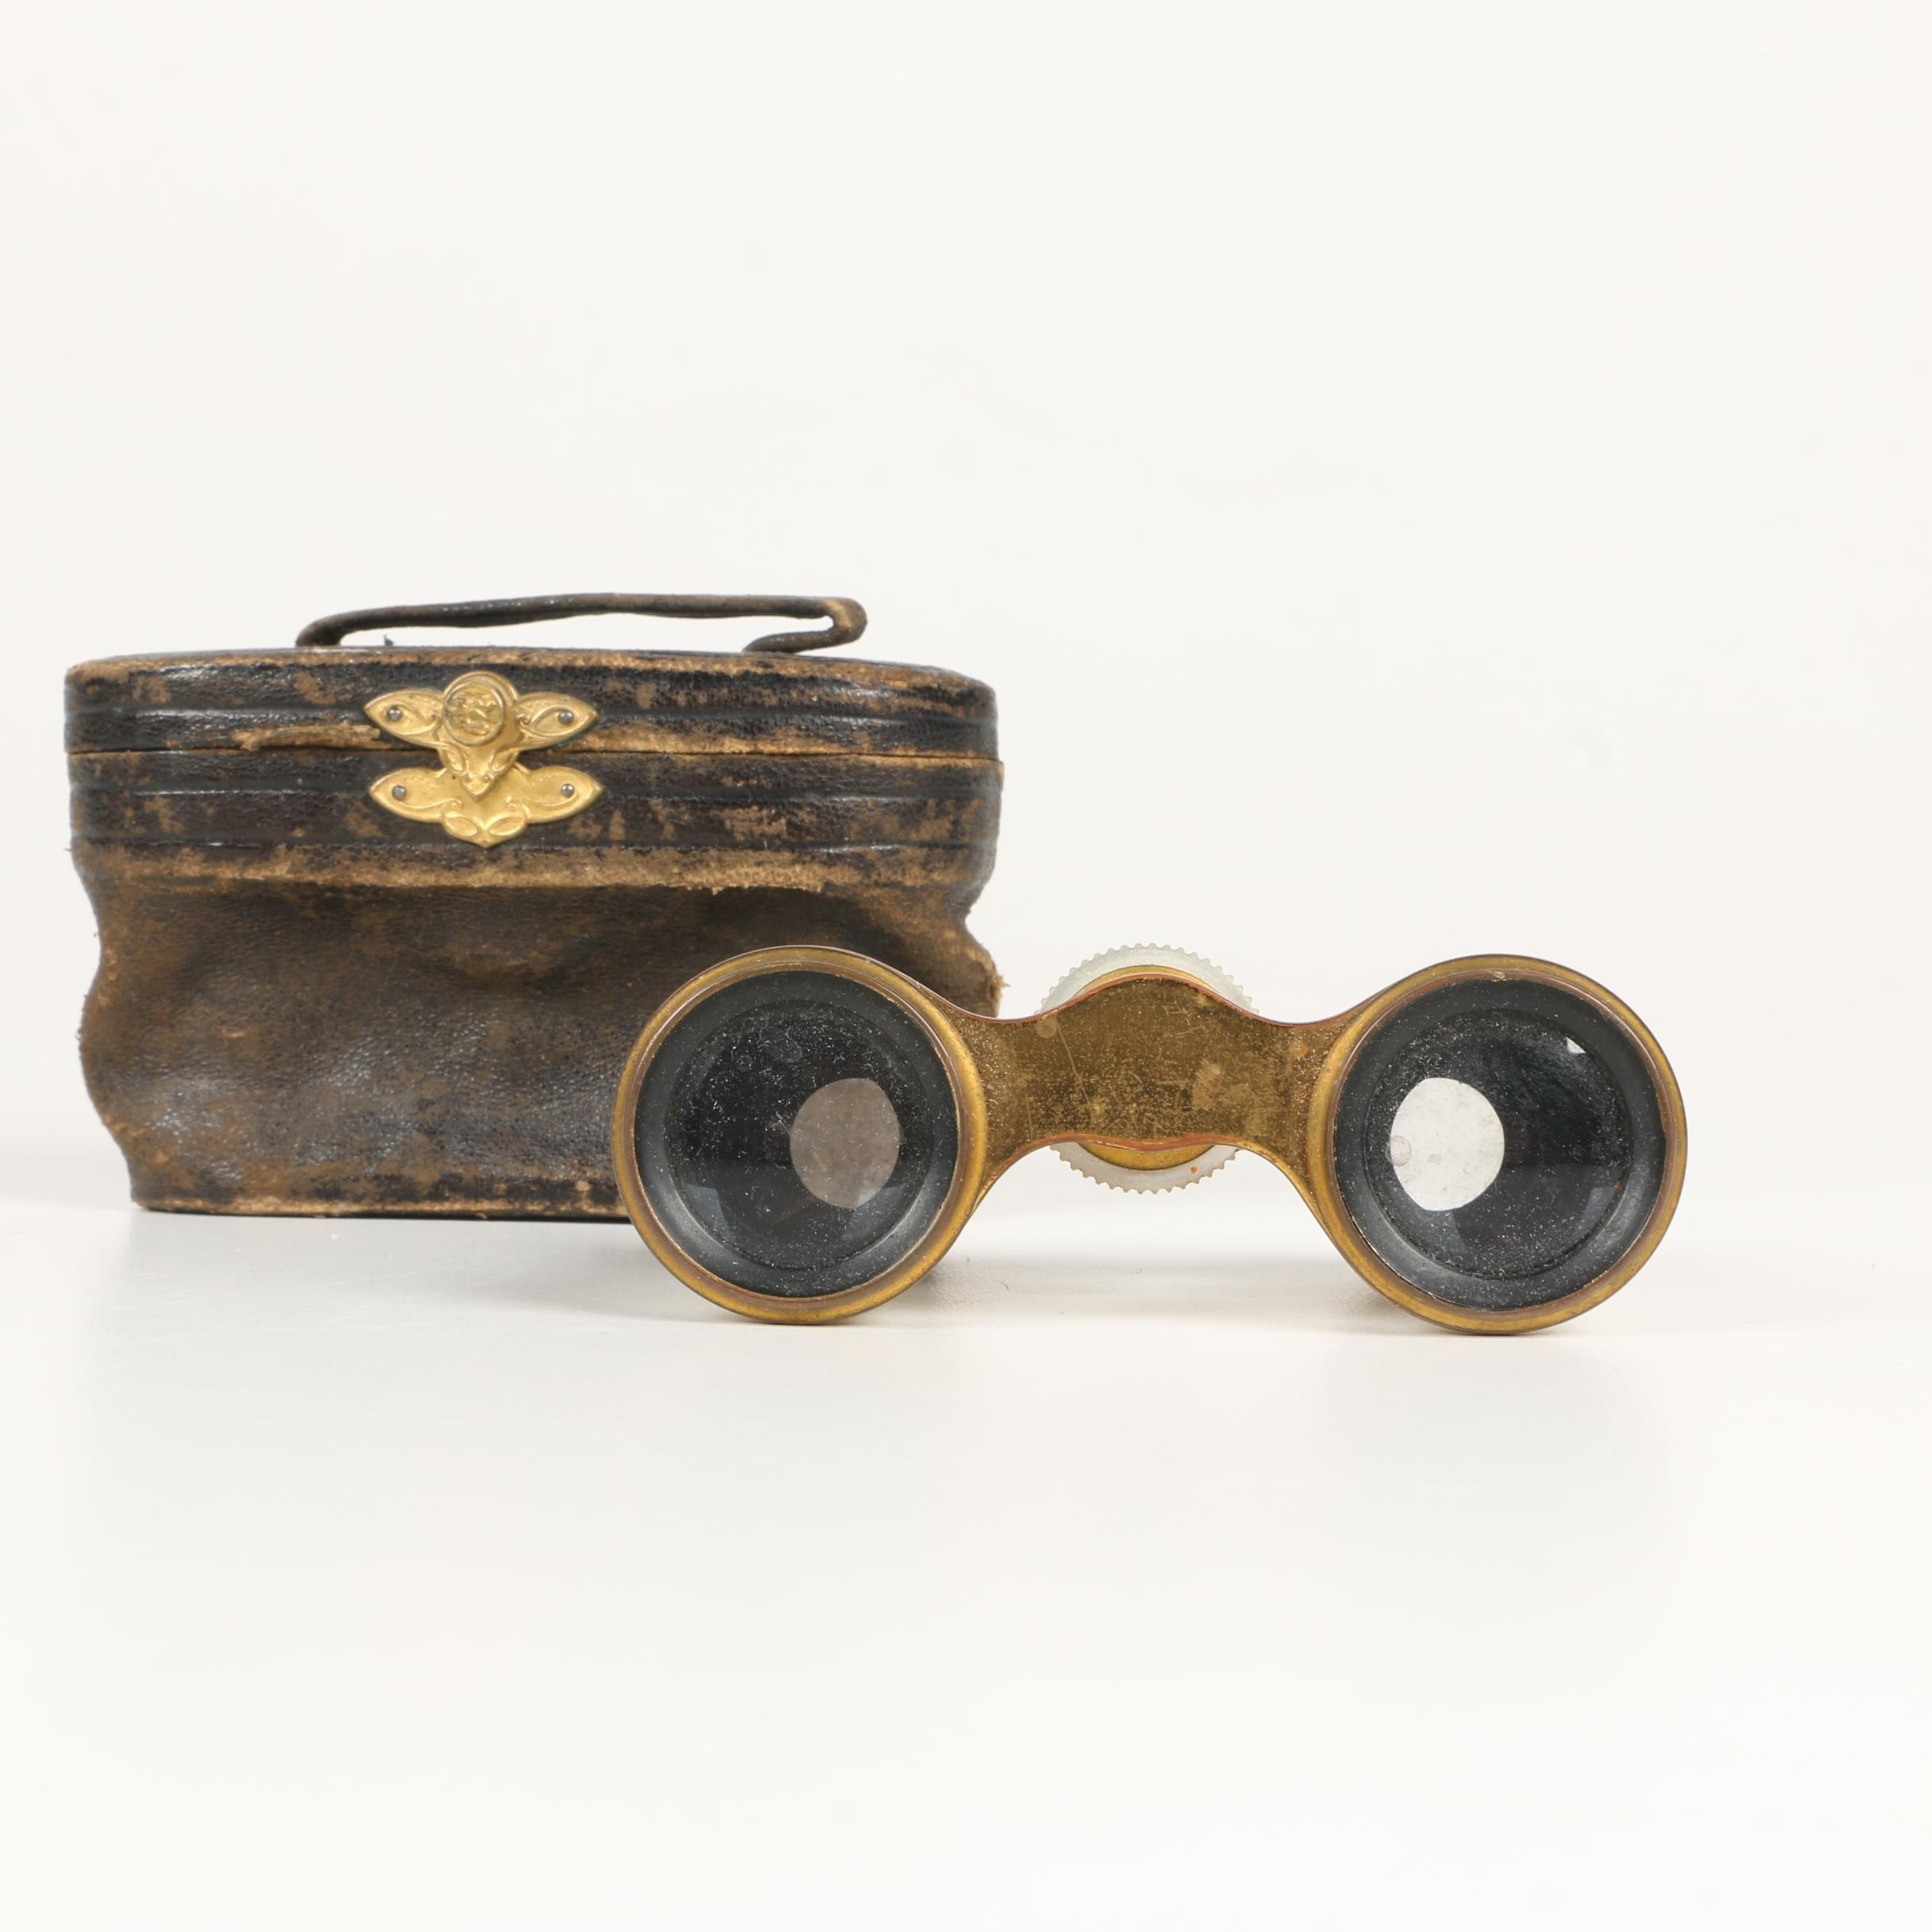 Antique Parisian Lemaire Fabt Mother of Pearl Opera Binoculars